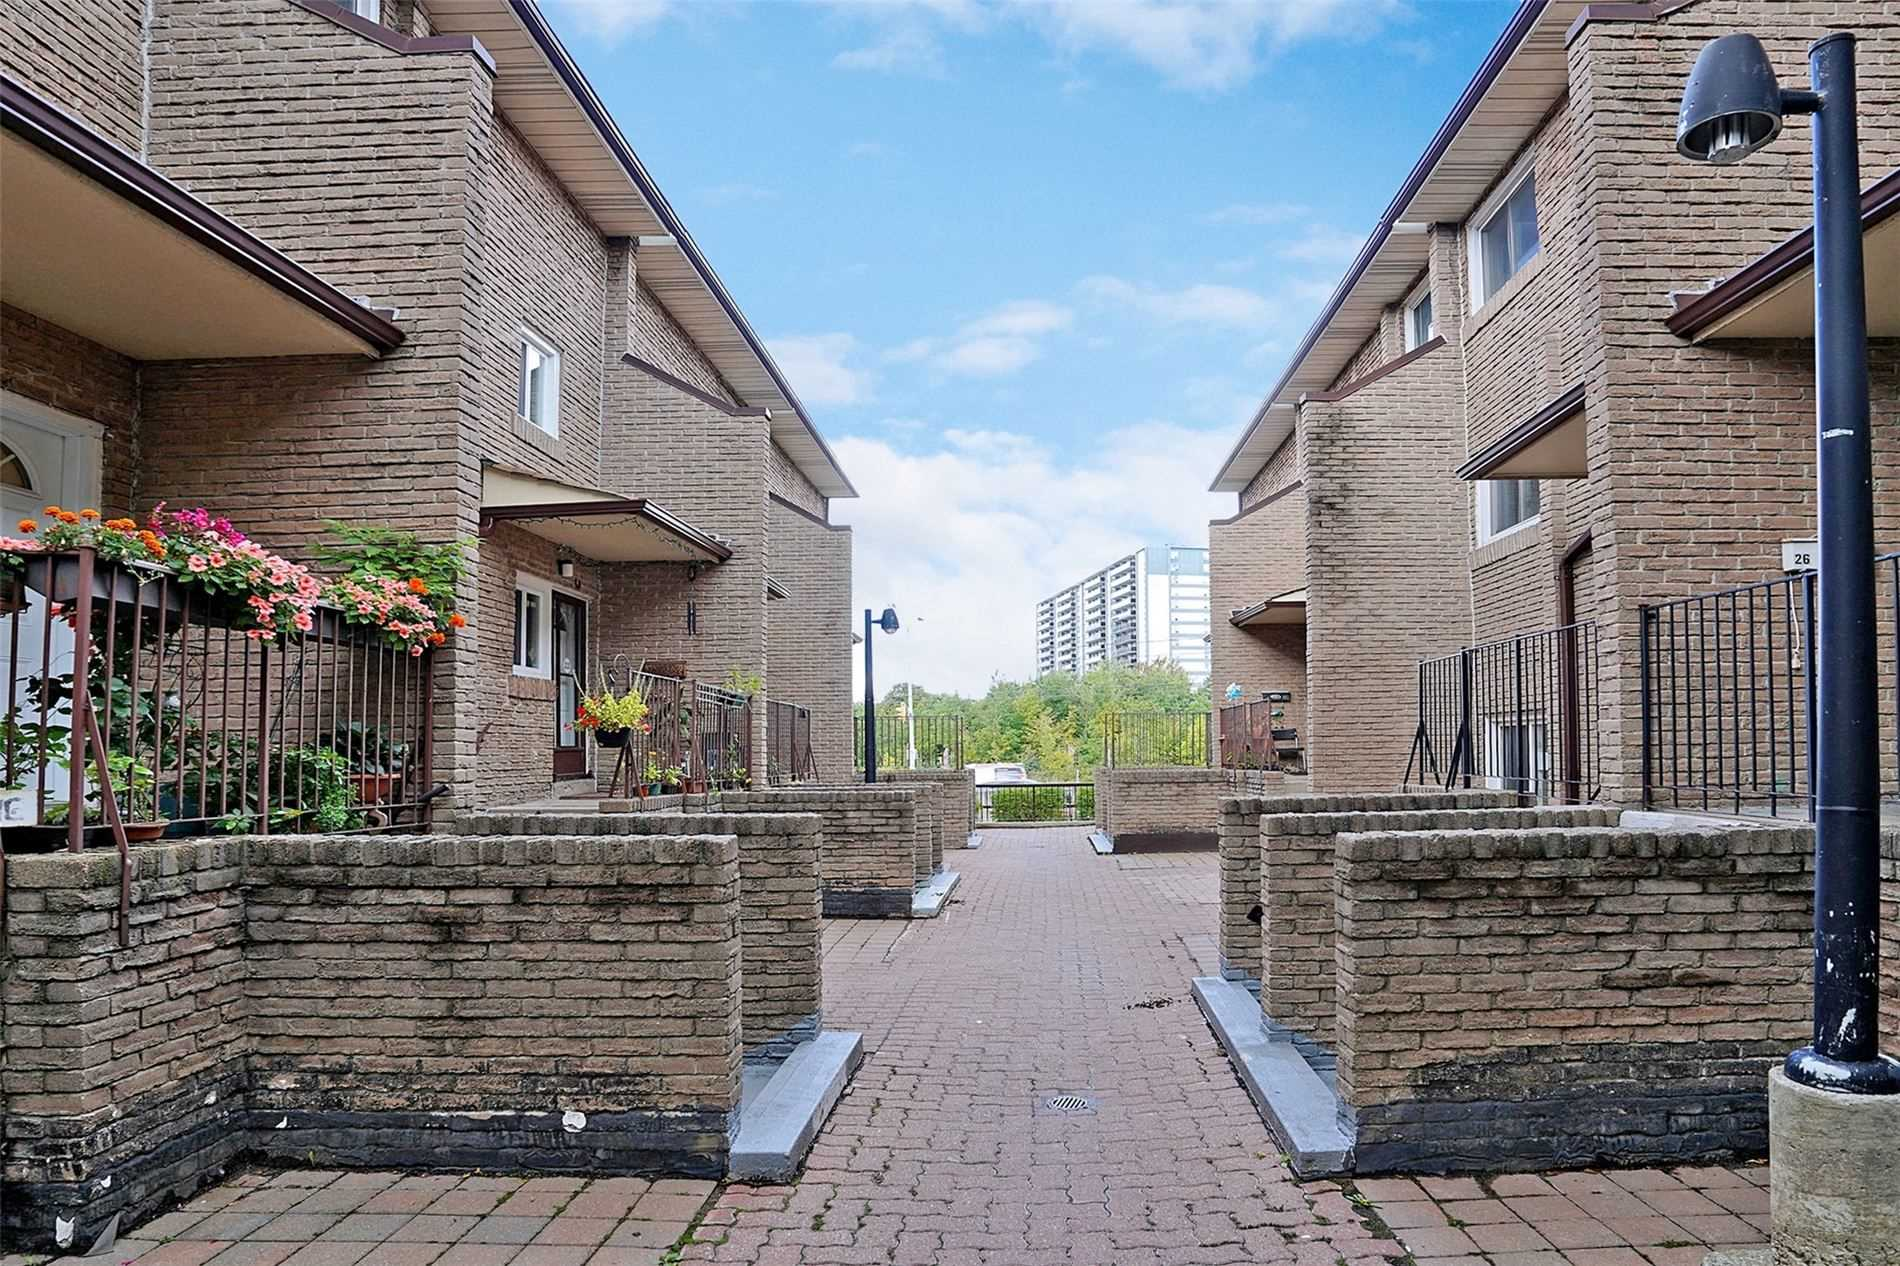 Condo Townhouse For Sale In Toronto , 3 Bedrooms Bedrooms, ,2 BathroomsBathrooms,Condo Townhouse,For Sale,28,Muir